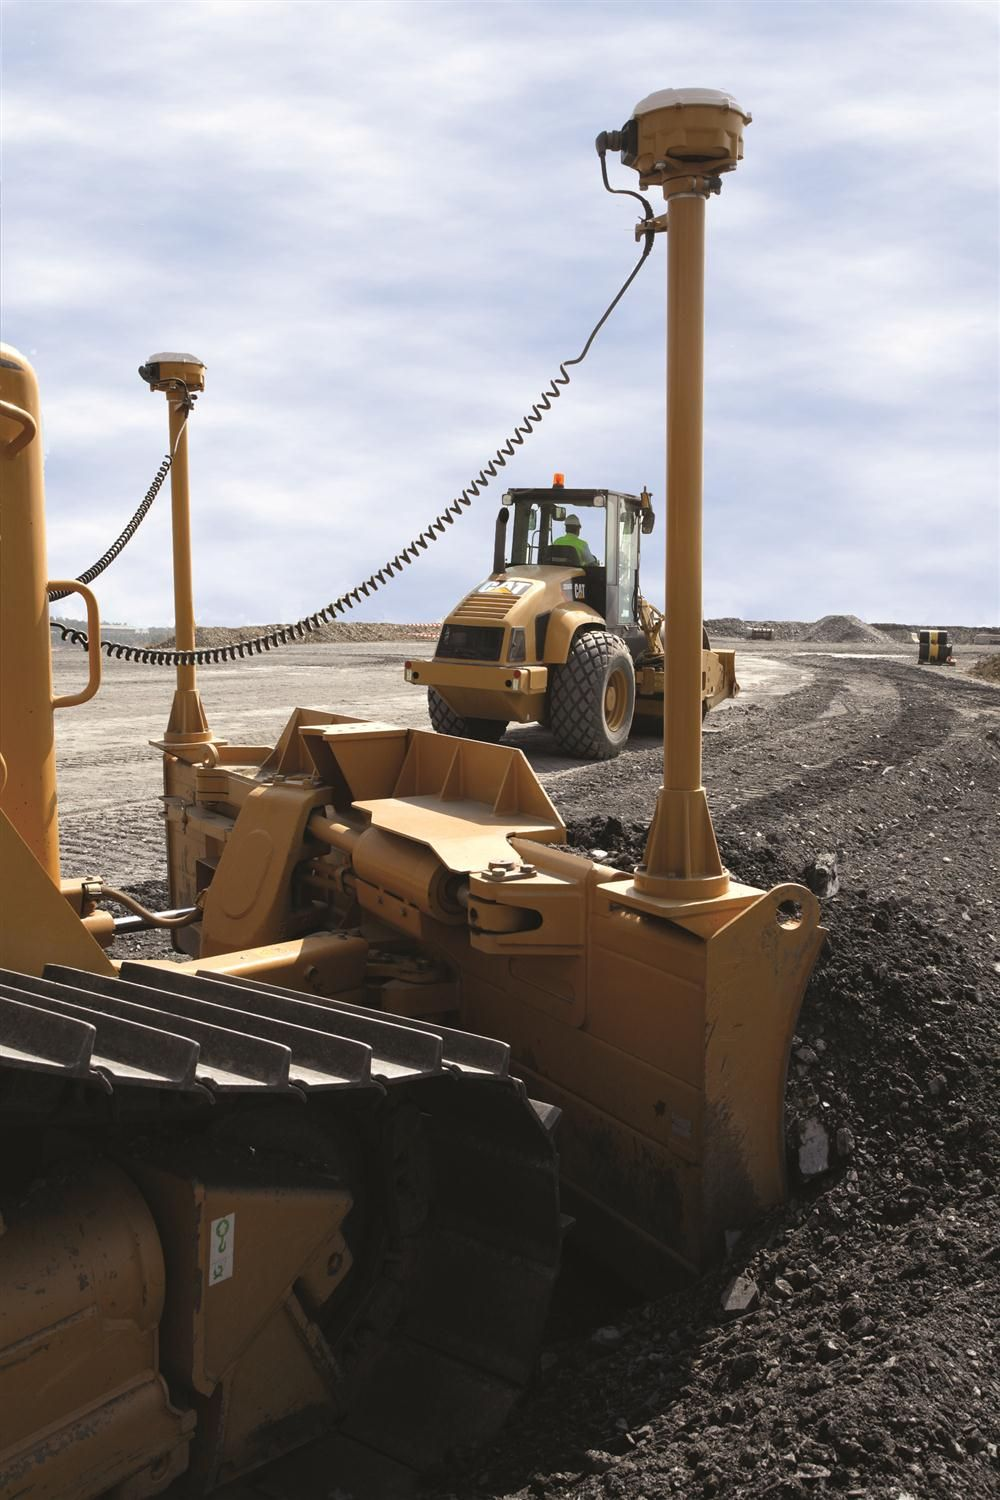 Ziegler became the local leader in GPS based-based survey, earthmoving and finish grading control systems in the early 2000s when it became a Trimble dealer.